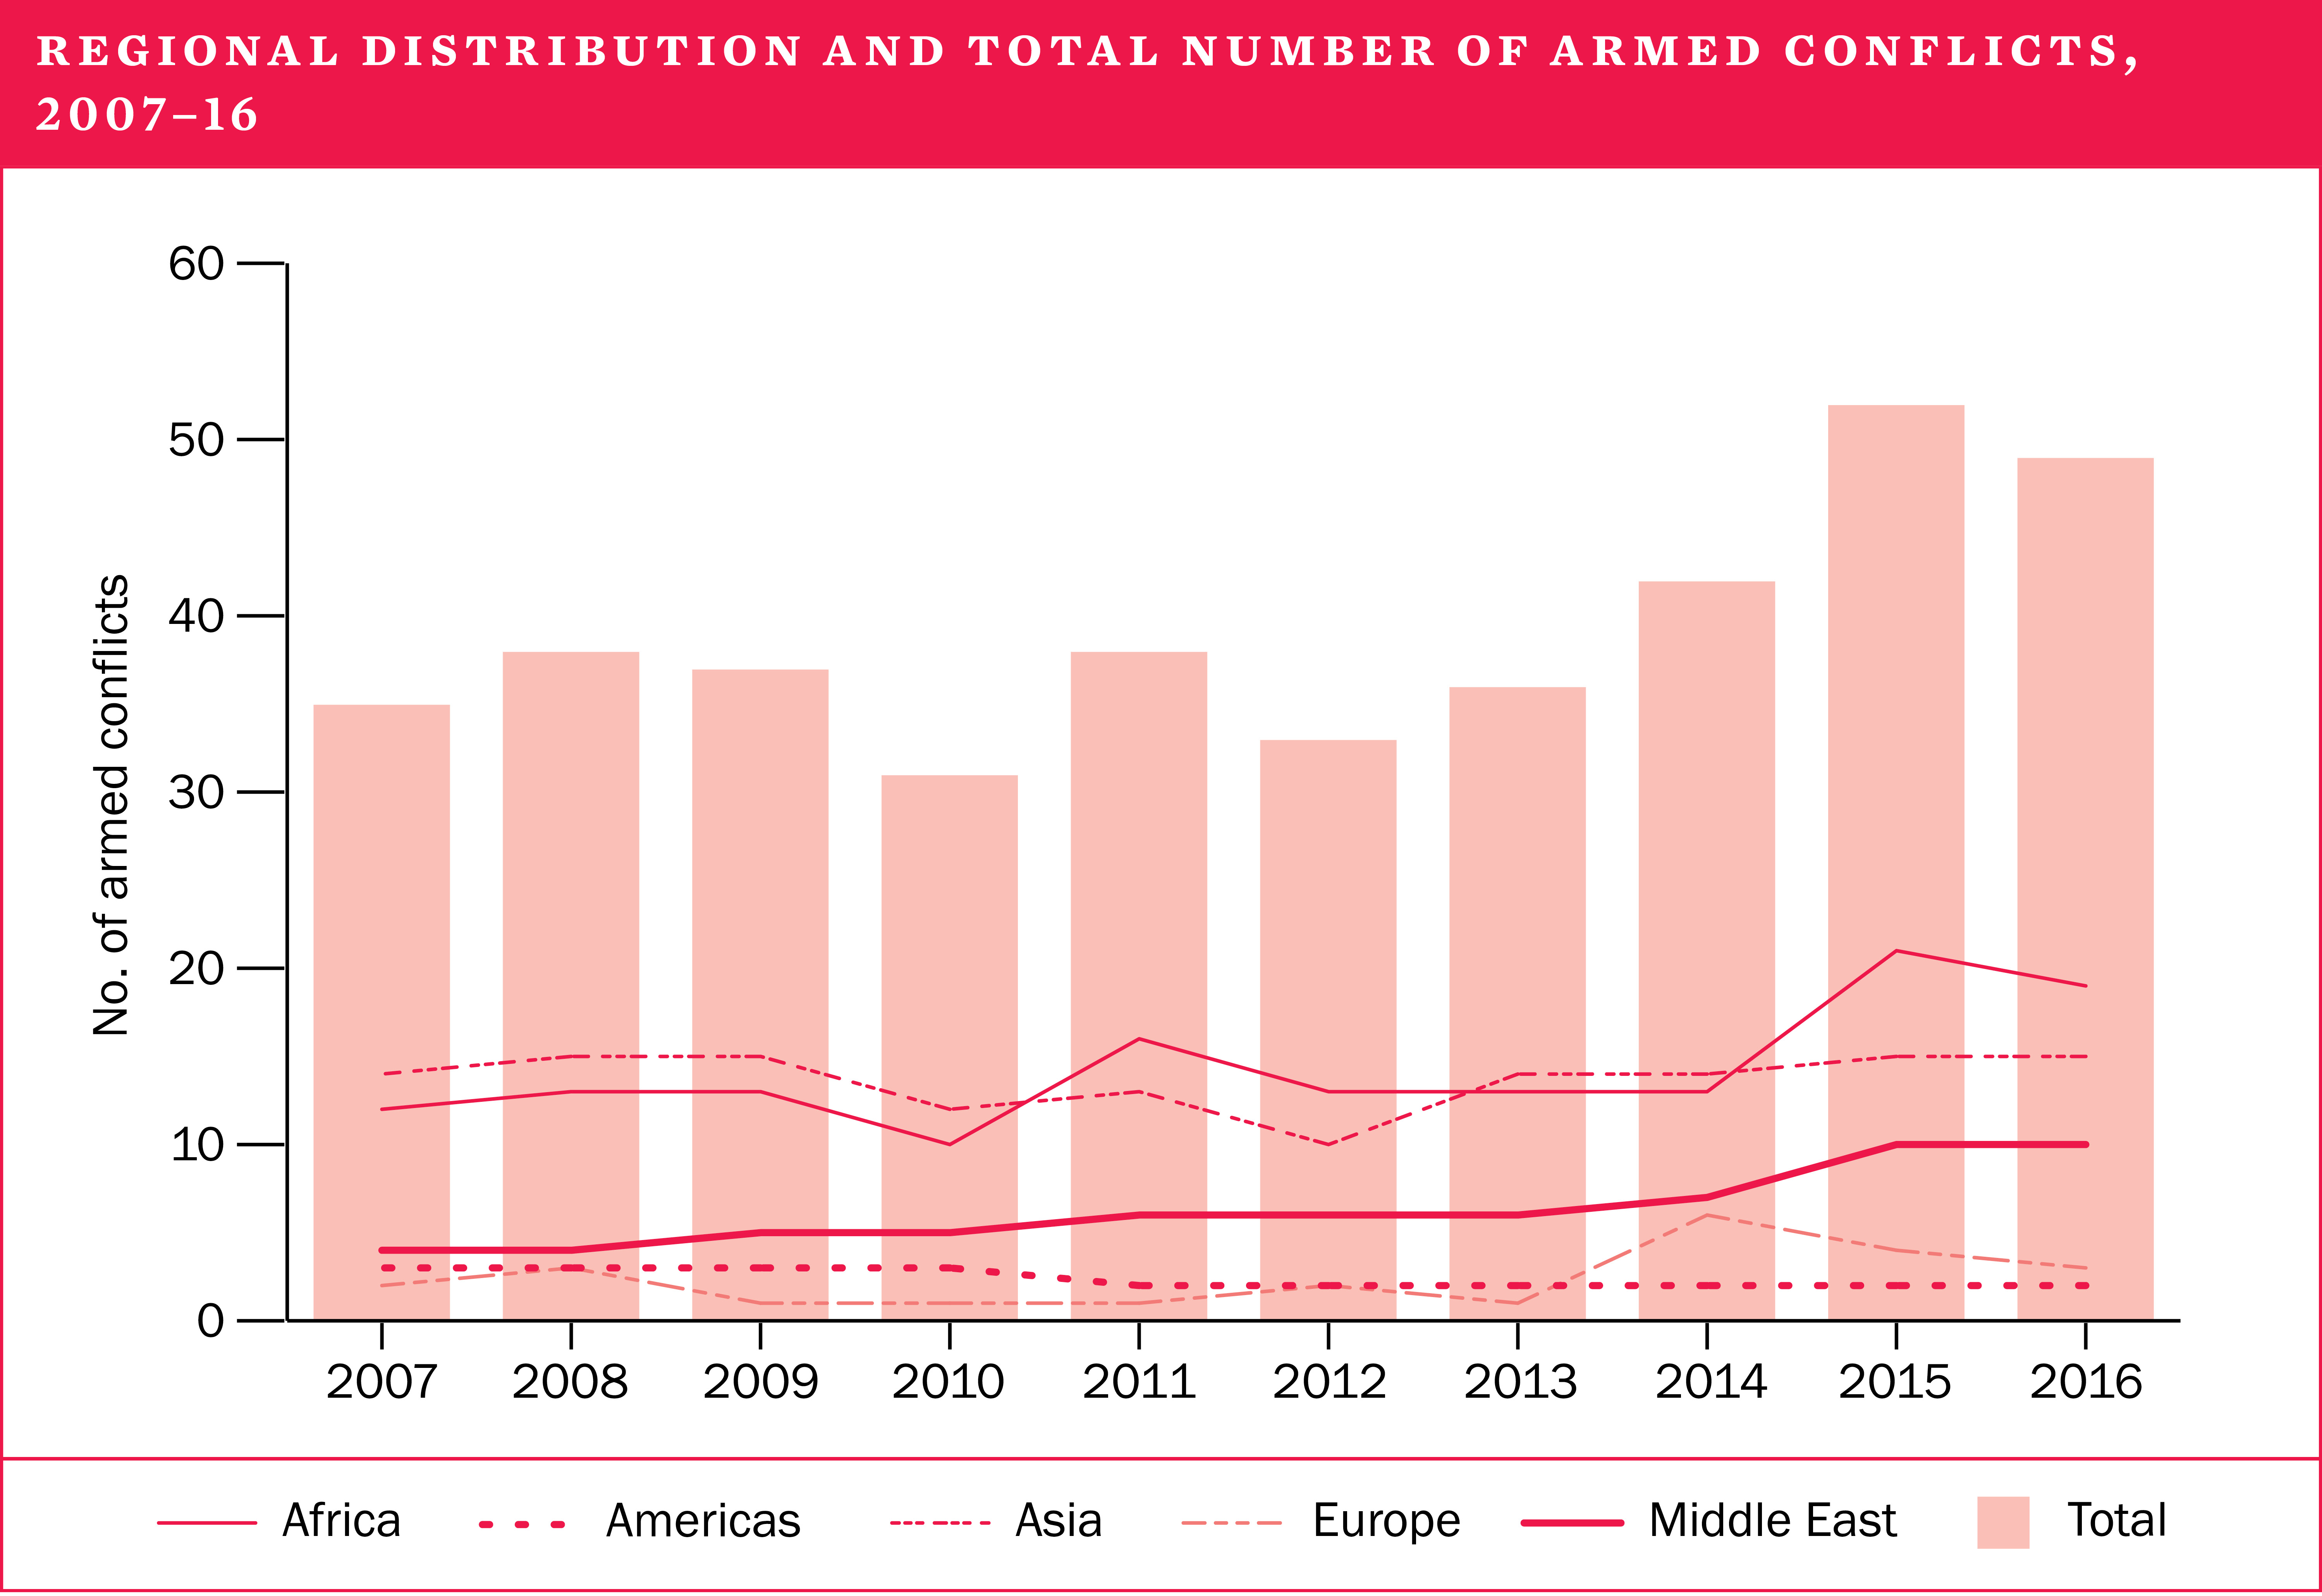 Regional distribution and total number of armed conflicts, 2007-16